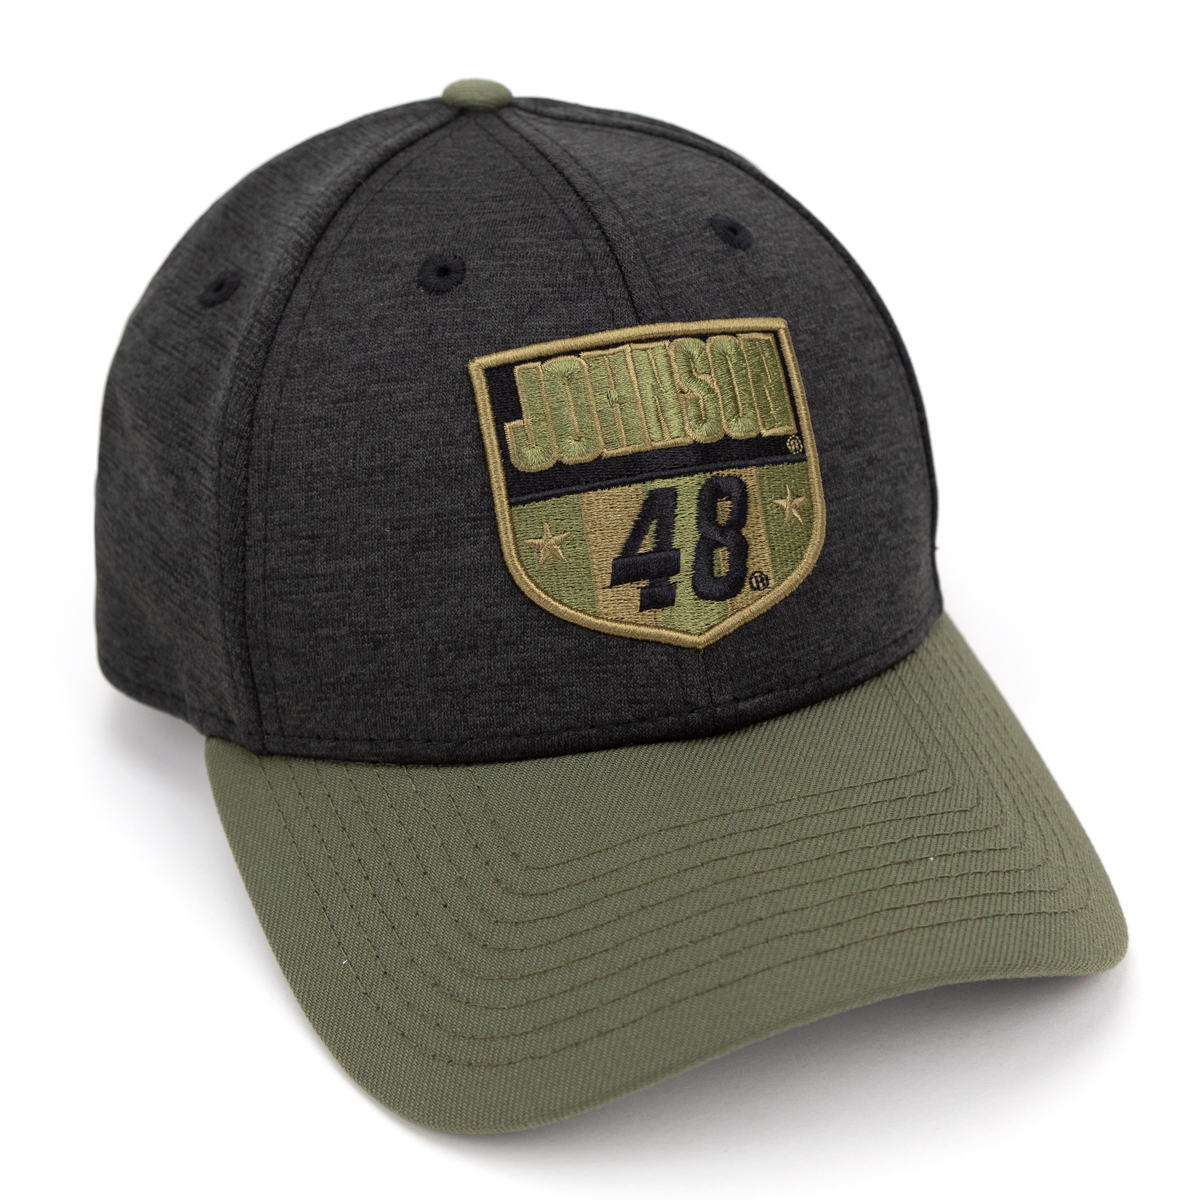 #48 Jimmie Johnson 2019 NASCAR New Era Military Salute Hat